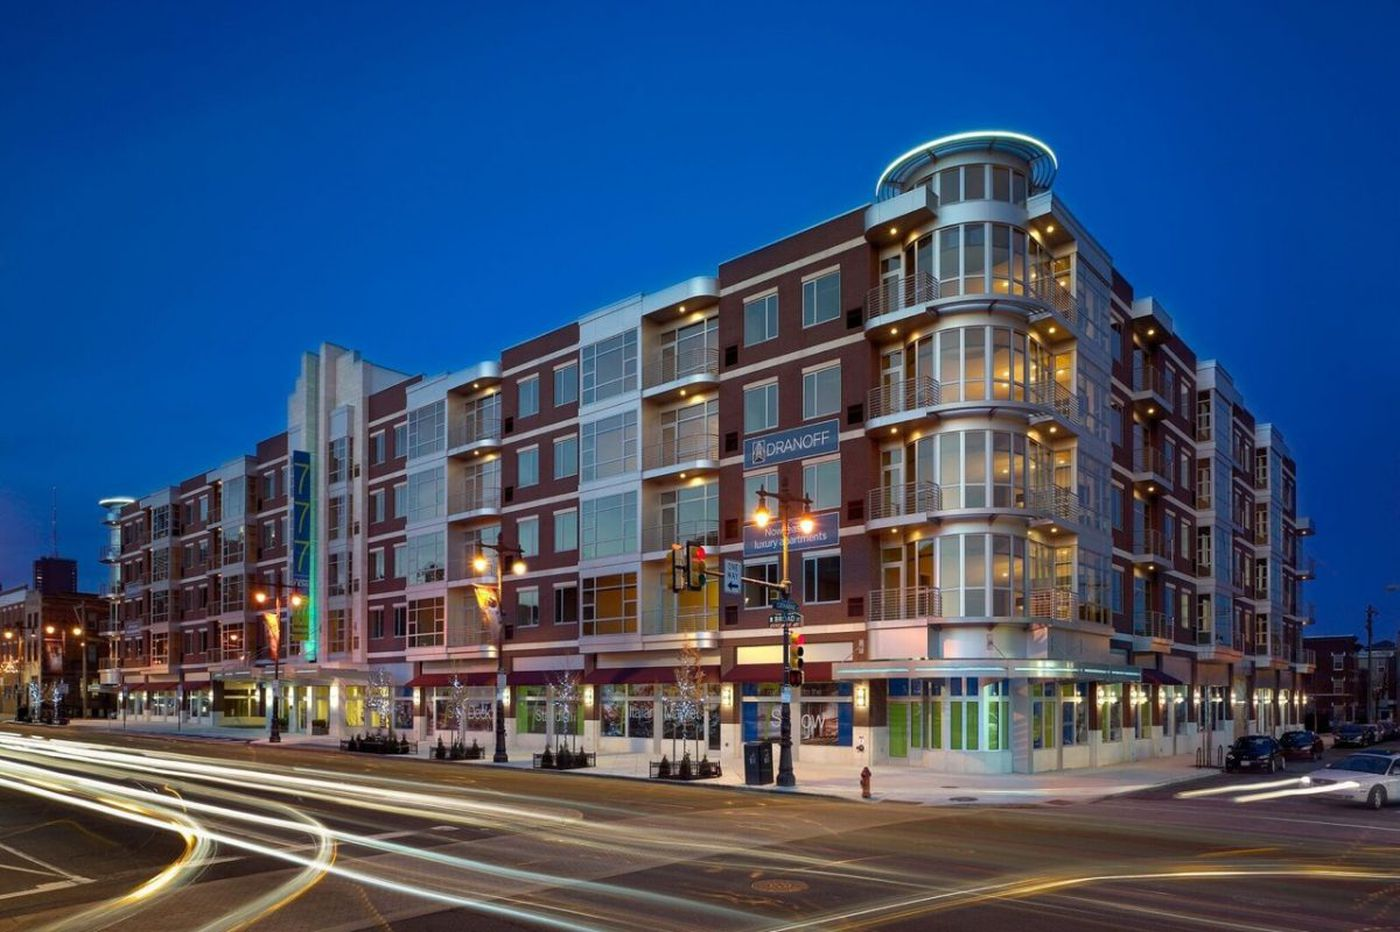 Carl Dranoff selling off all Philly apartment holdings to Denver-based Aimco